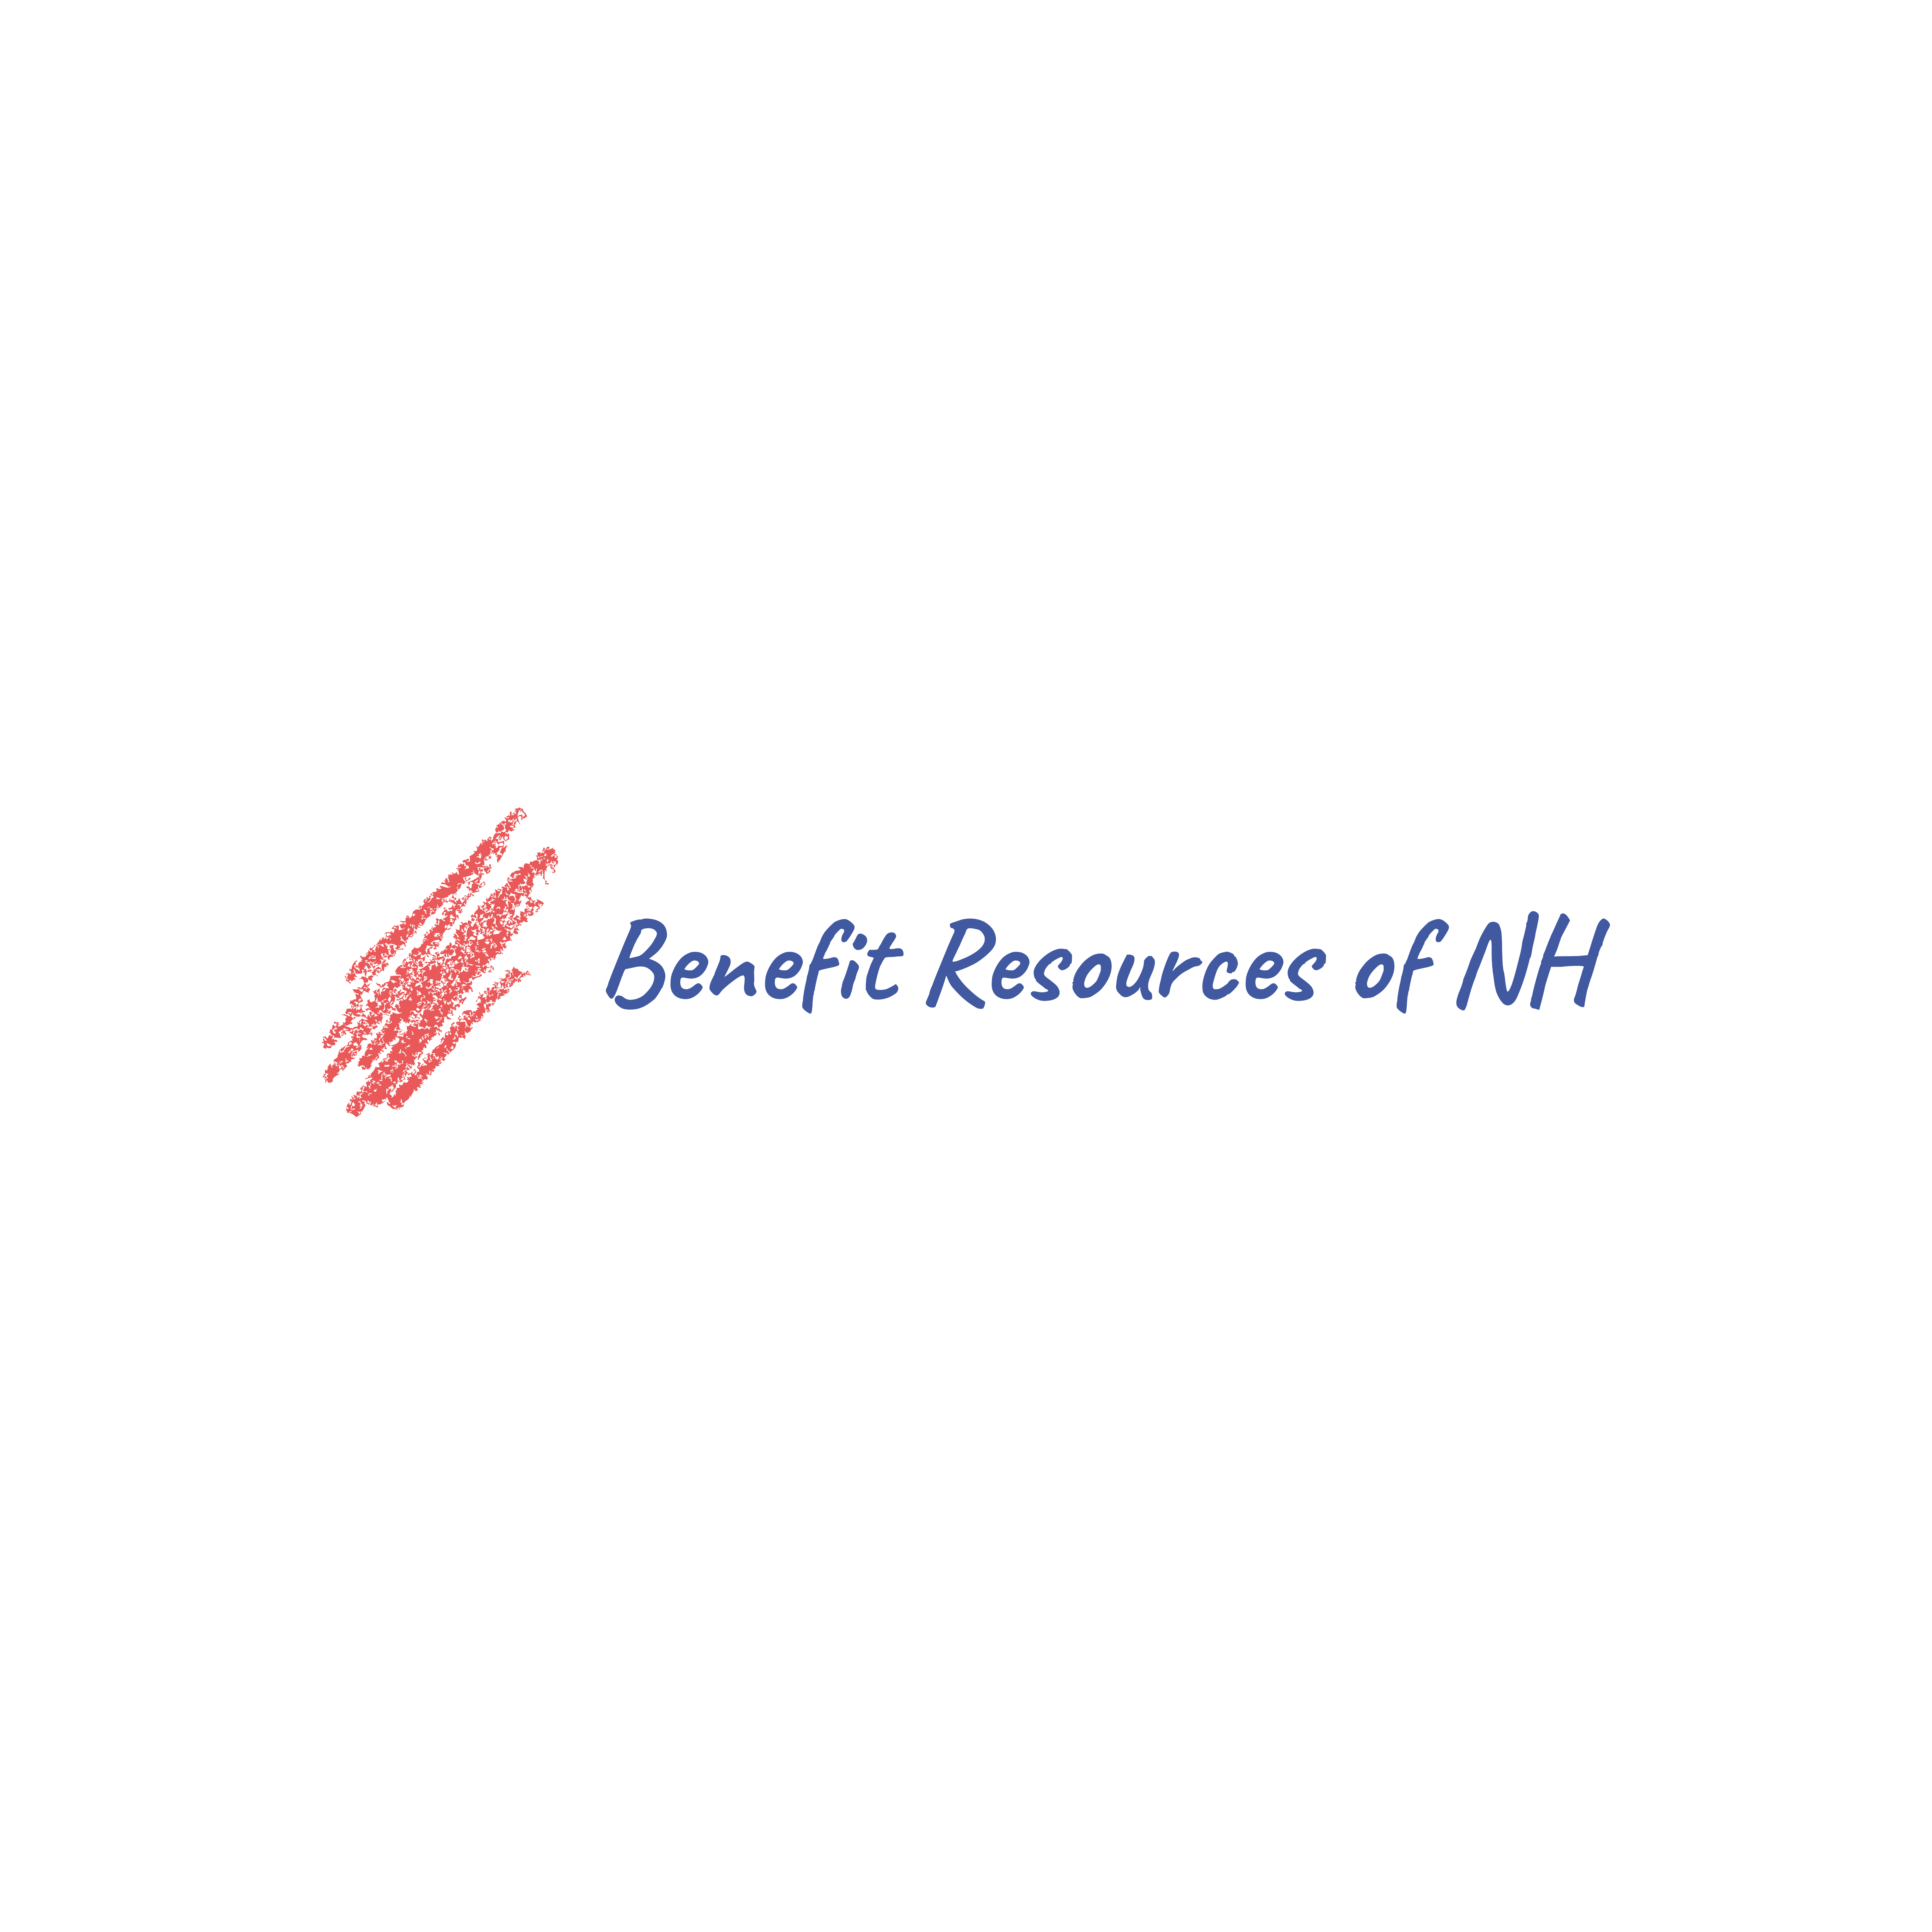 Benefit Resources of NH